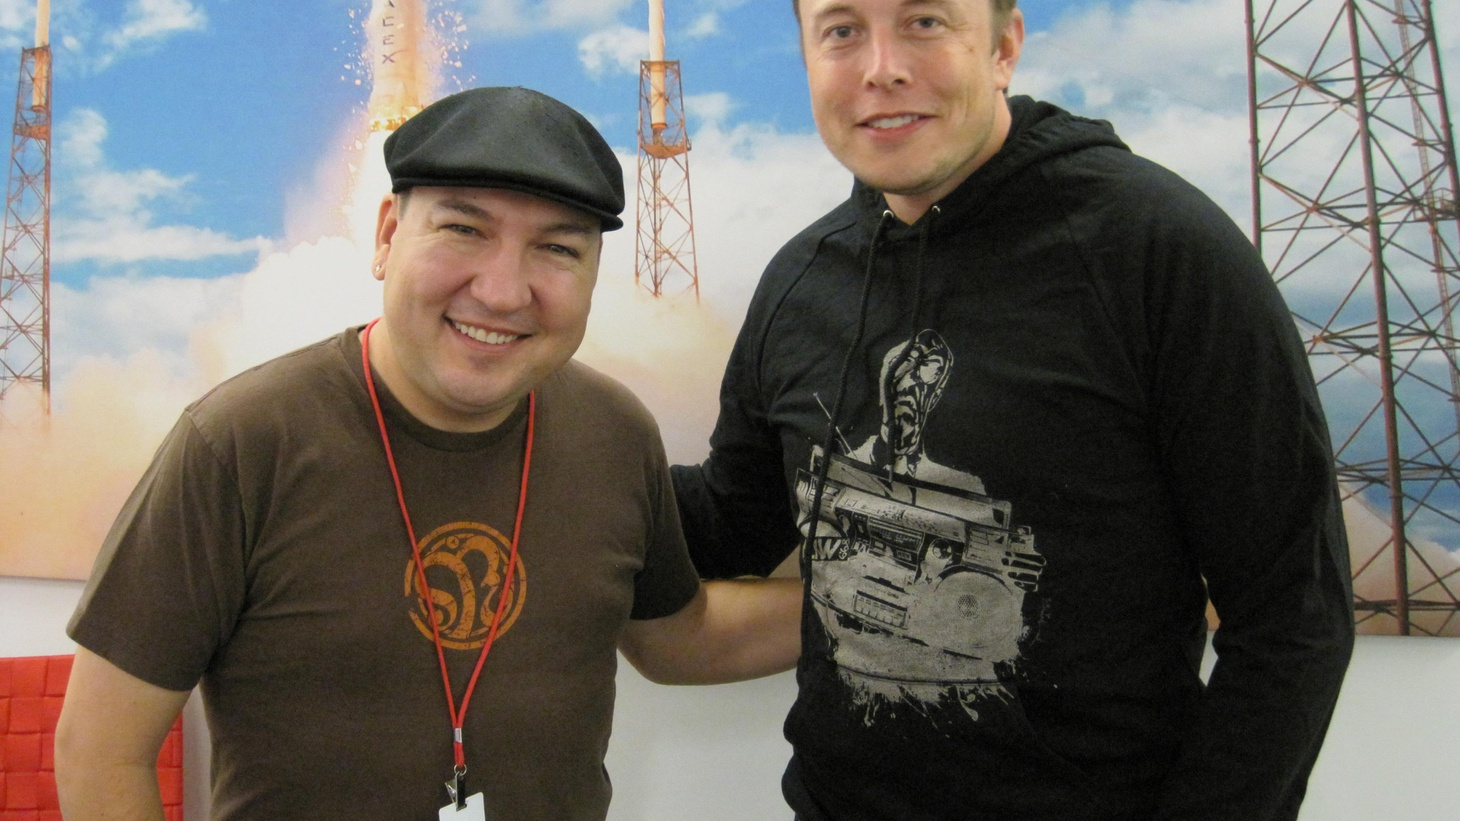 In a Guest DJ Project first, we took a field trip to the SpaceX headquarters to visit with CEO Elon Musk as the company prepares to launch an unmanned capsule to the International Space Station in 2012. Elon shares his favorite song to whistle, the Andrea Bocelli track that reminds him the world is a beautiful place and shows his sense of humor with a pick by Monty Python.